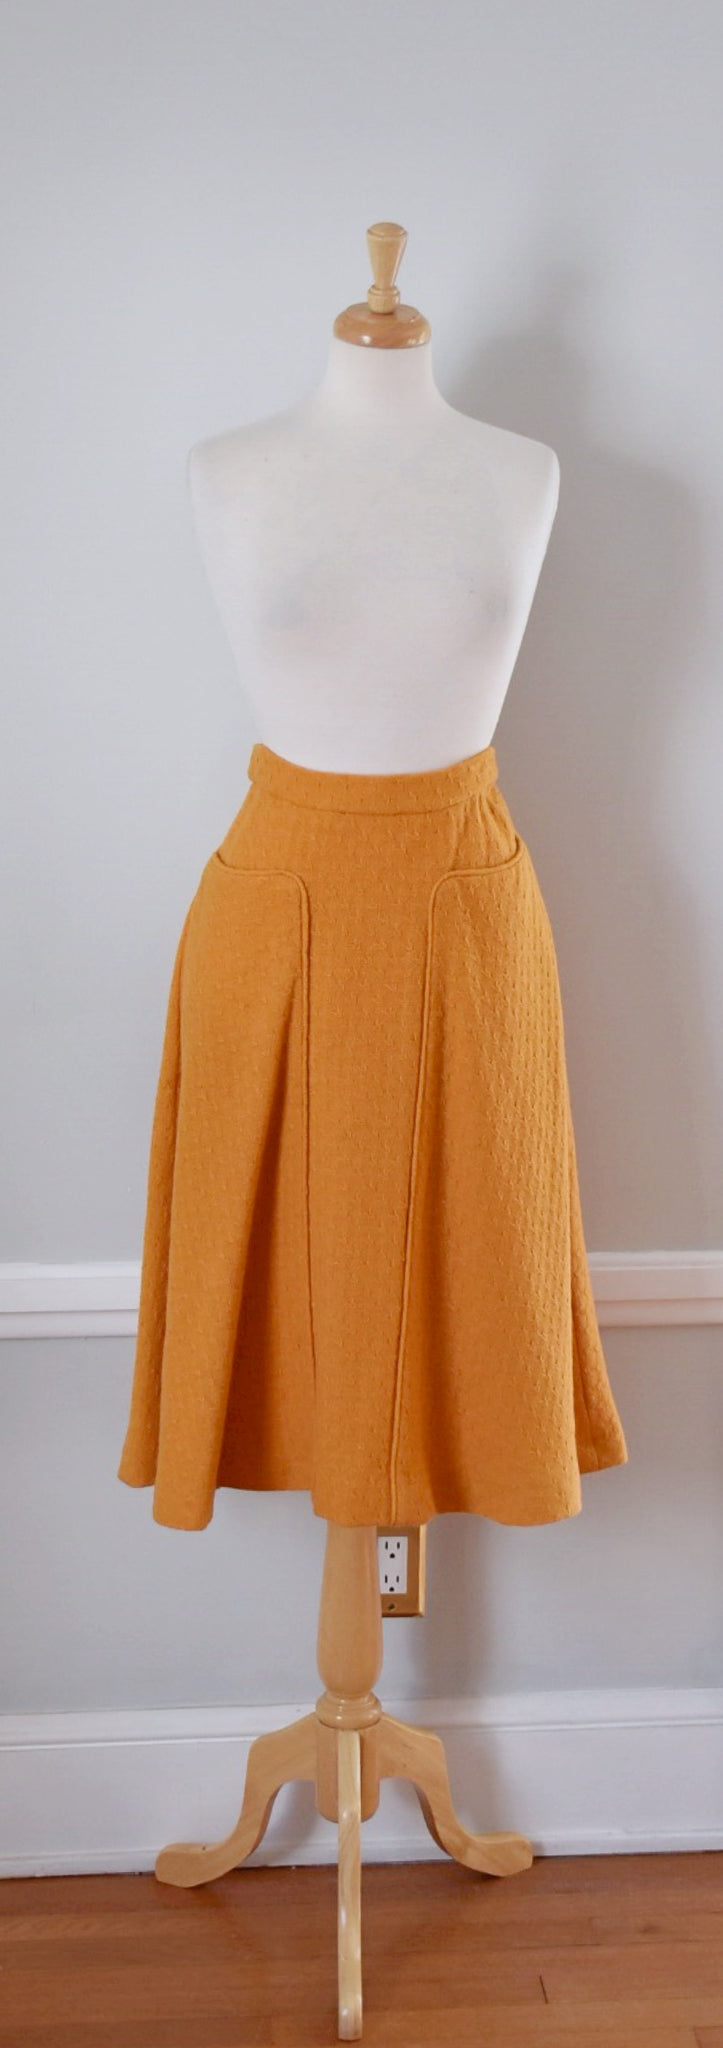 SOLD // 40s / 50s Vintage Textured Wool Midi Skirt